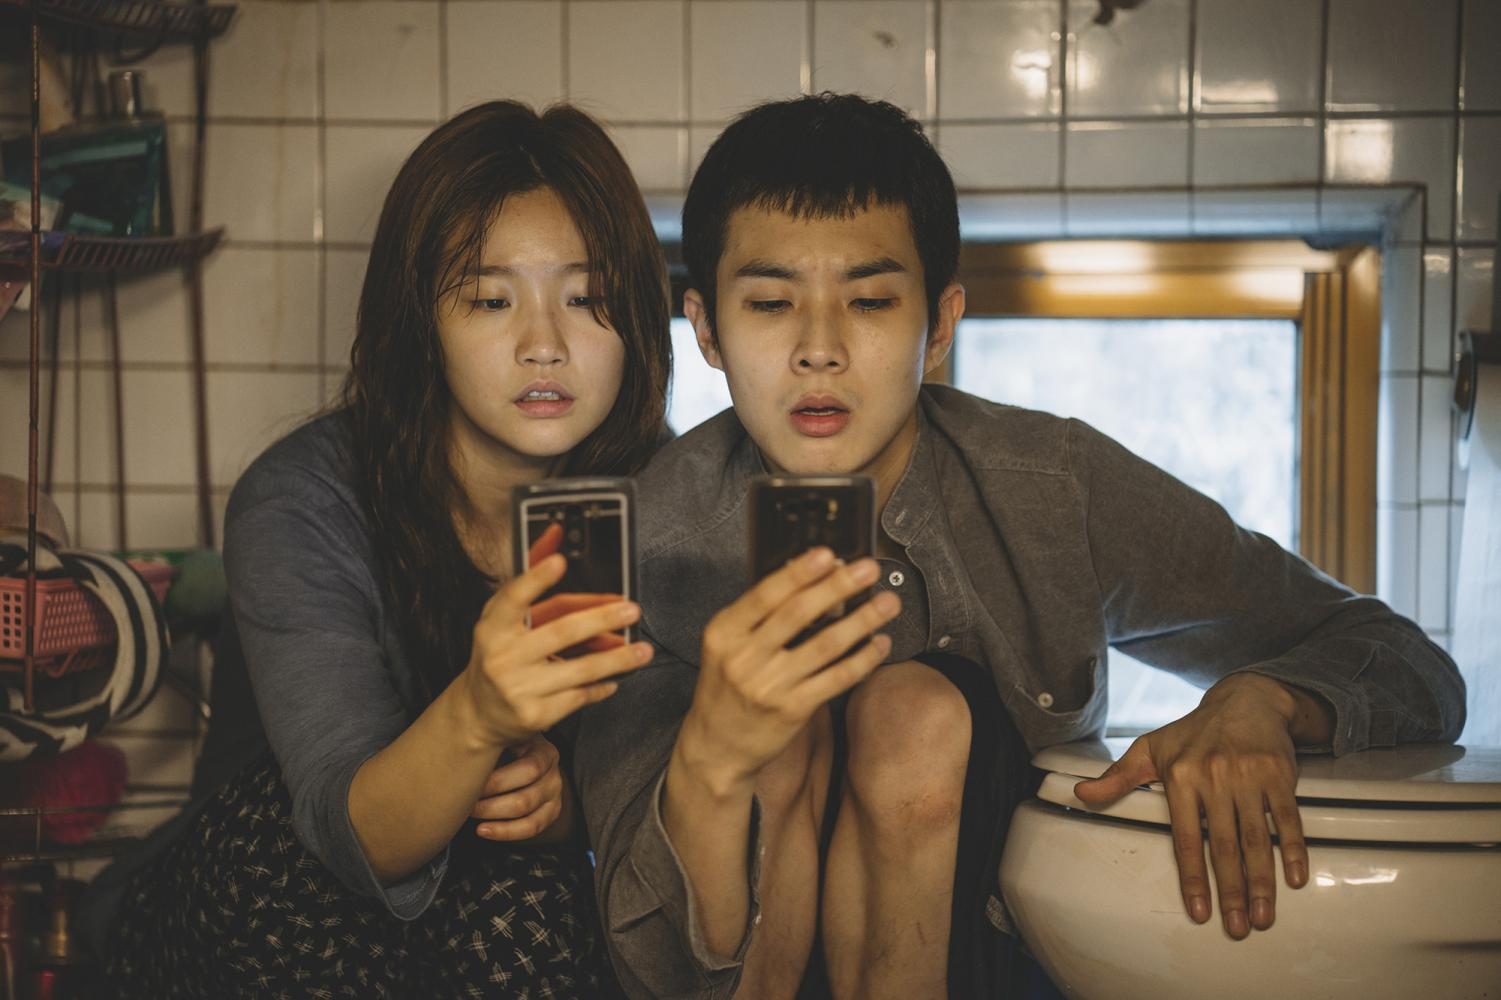 Park So-dam and Choi Woo-shik in the movie